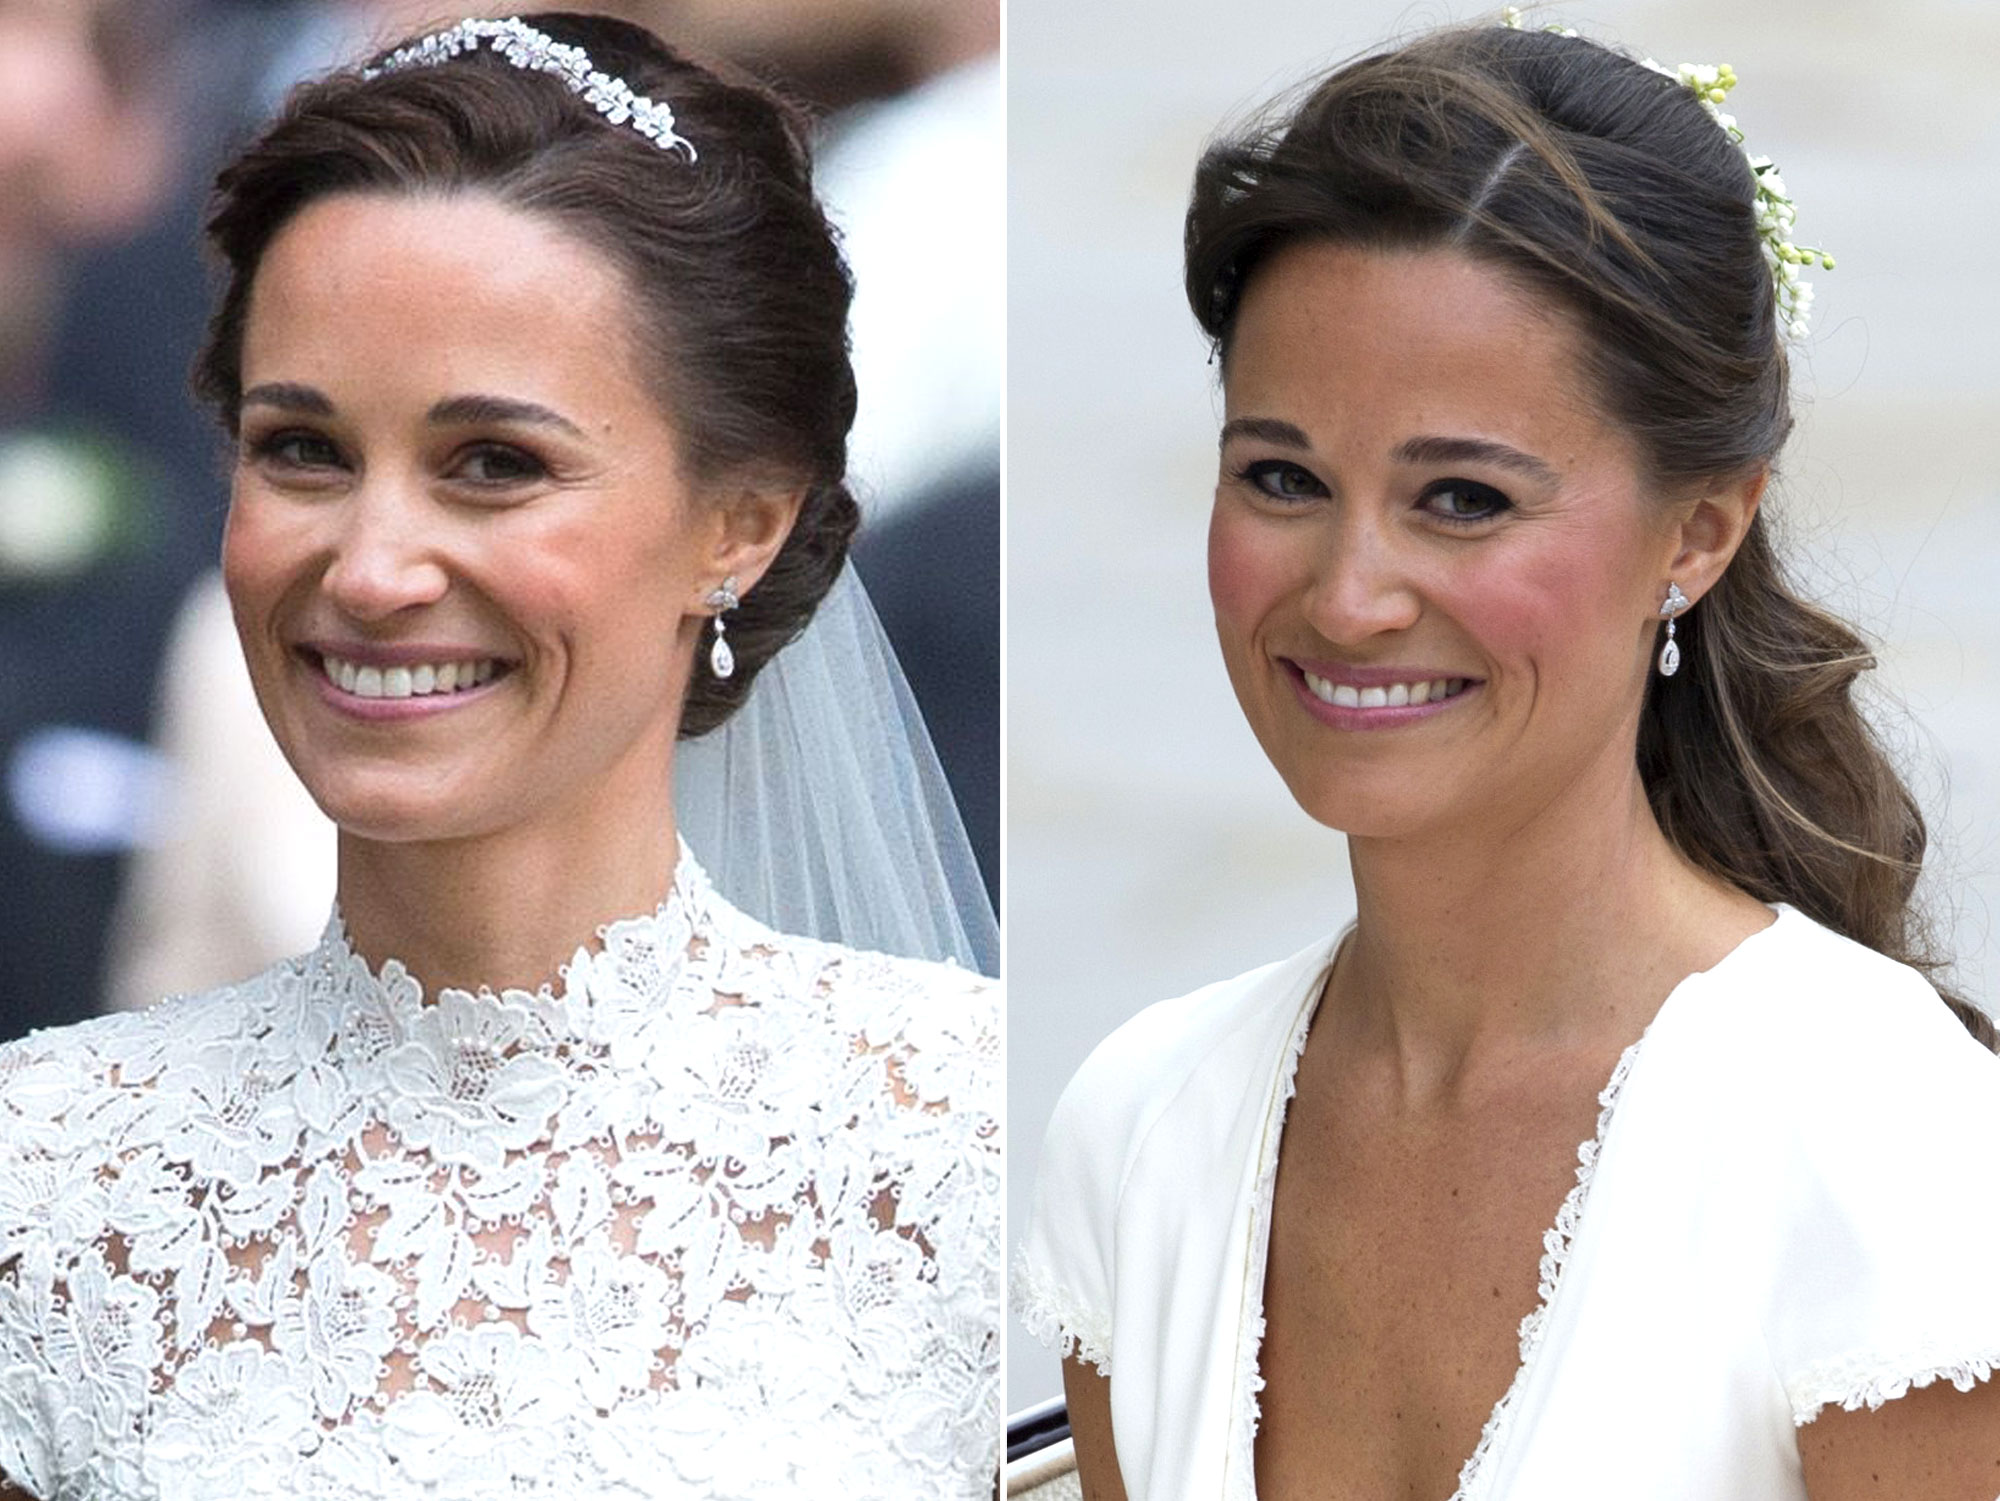 Pippa Middleton's 'Something Old' Was the Perfect Callback to Her Sister Kate's Royal Wedding